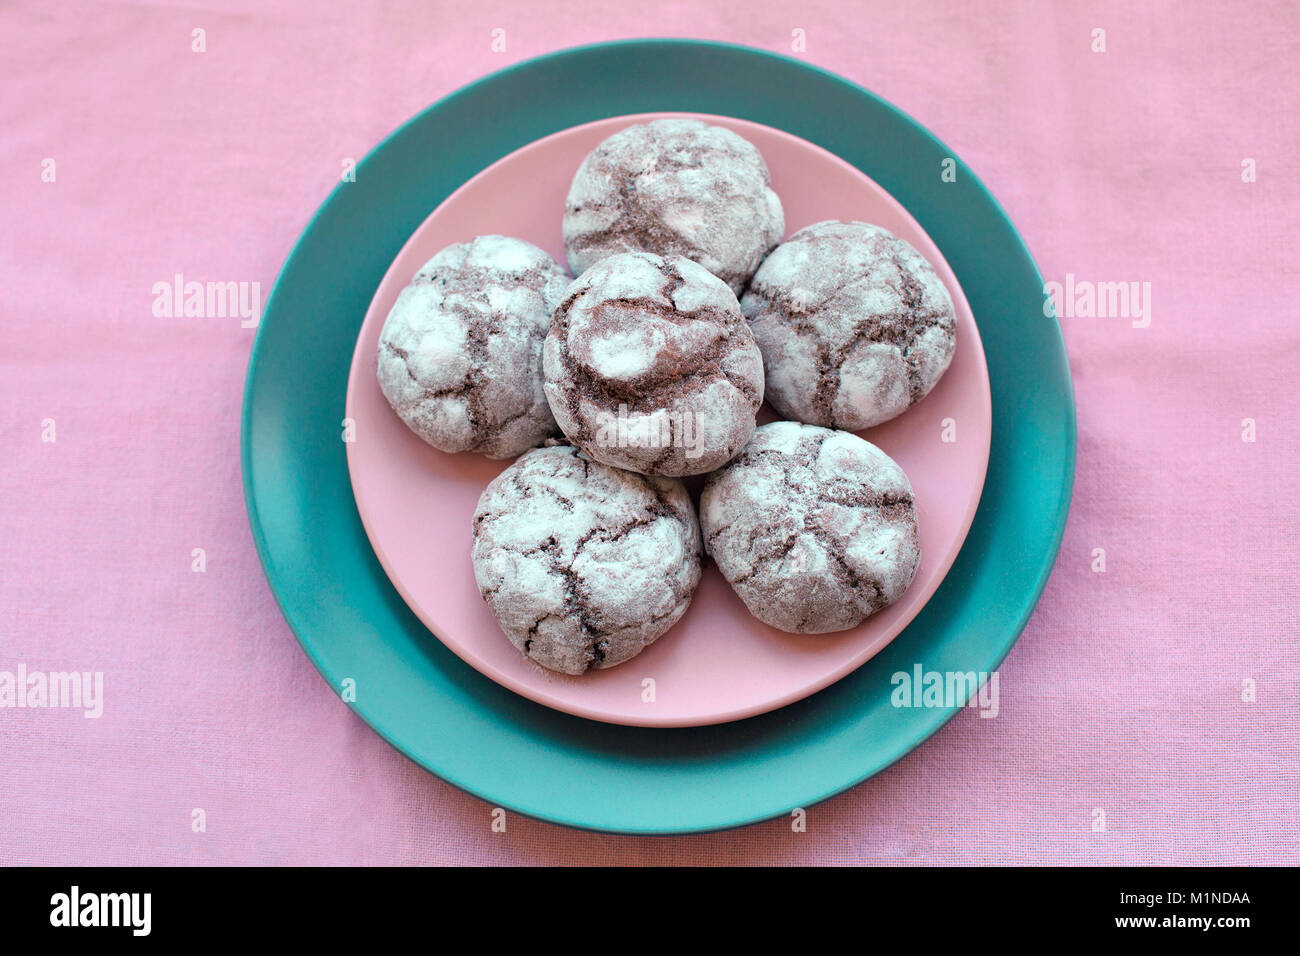 Chocolate cookies on plate onpink tablecloth, top view. Food, junk-food, culinary, baking and eating concept. - Stock Image